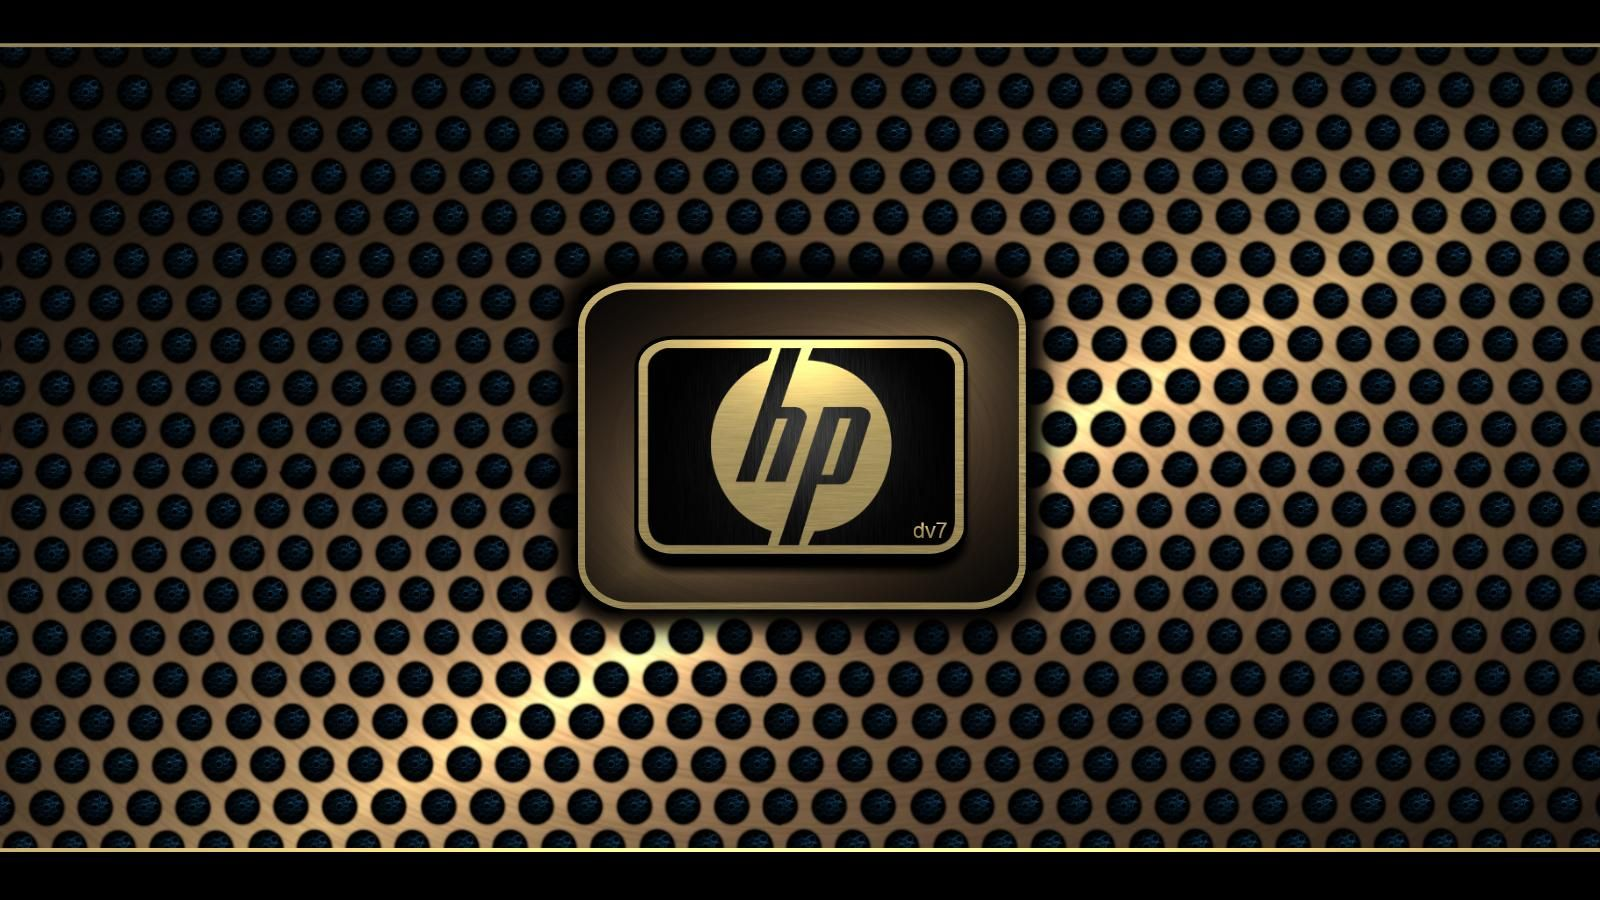 wallpapers of new hp business laptops notebookreview | hd wallpapers